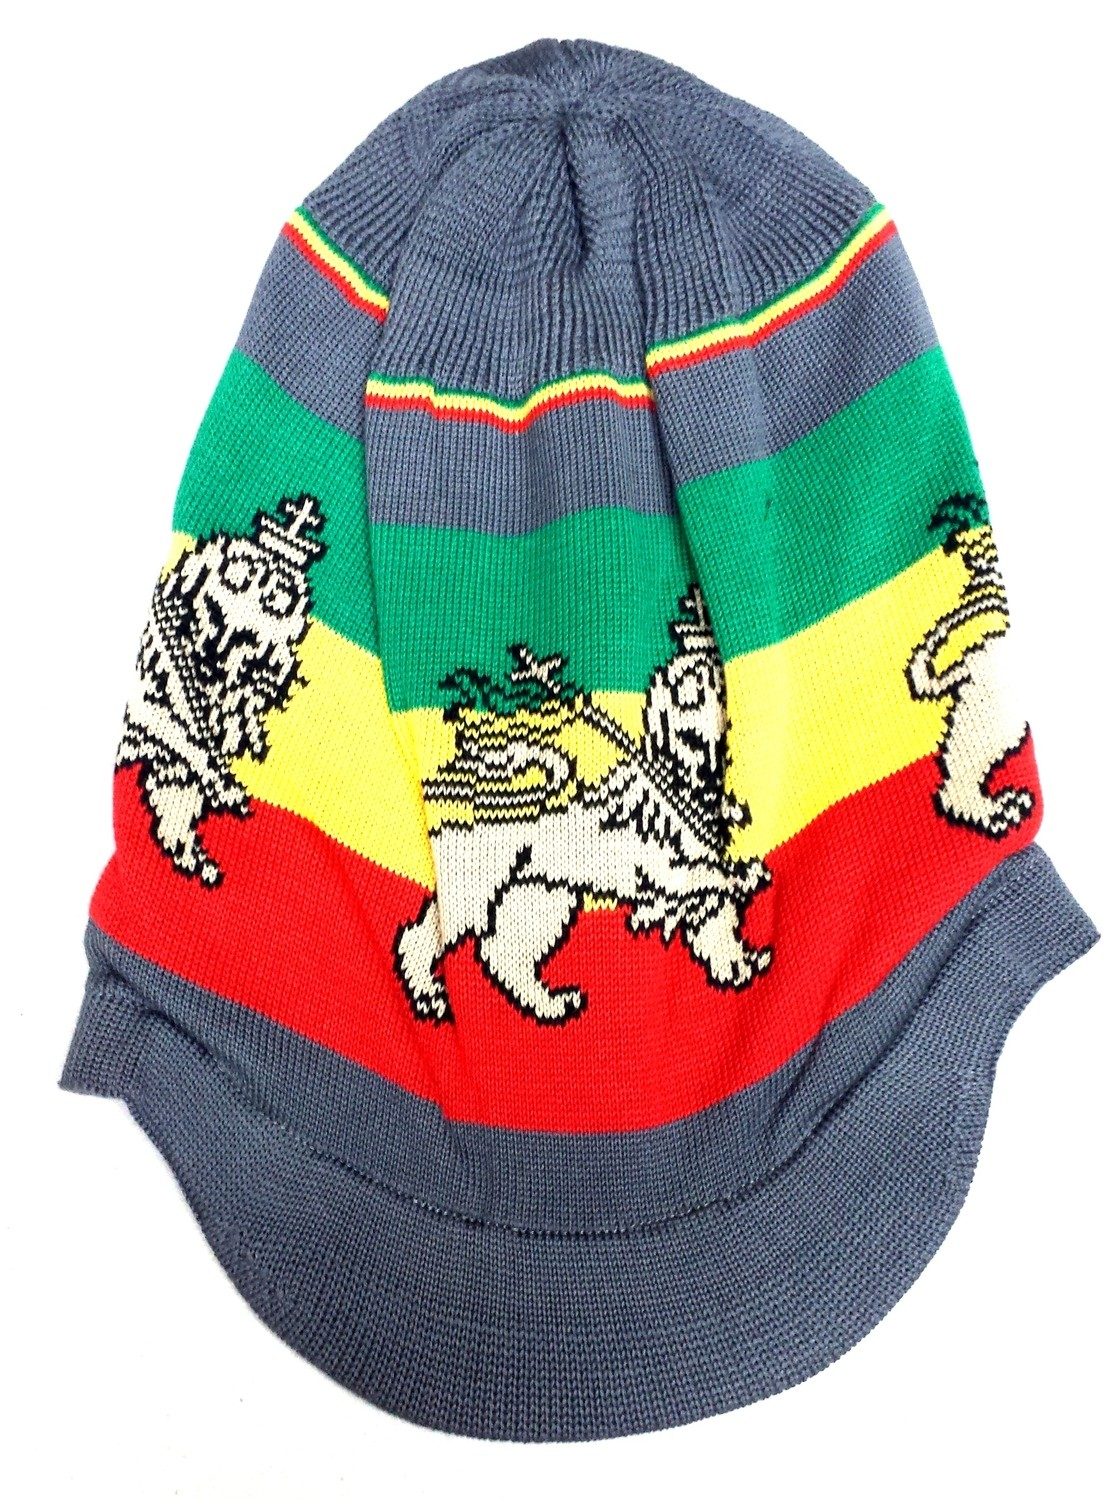 Grey Lion of Judah Rasta Hat  Approx. 12 inches tall